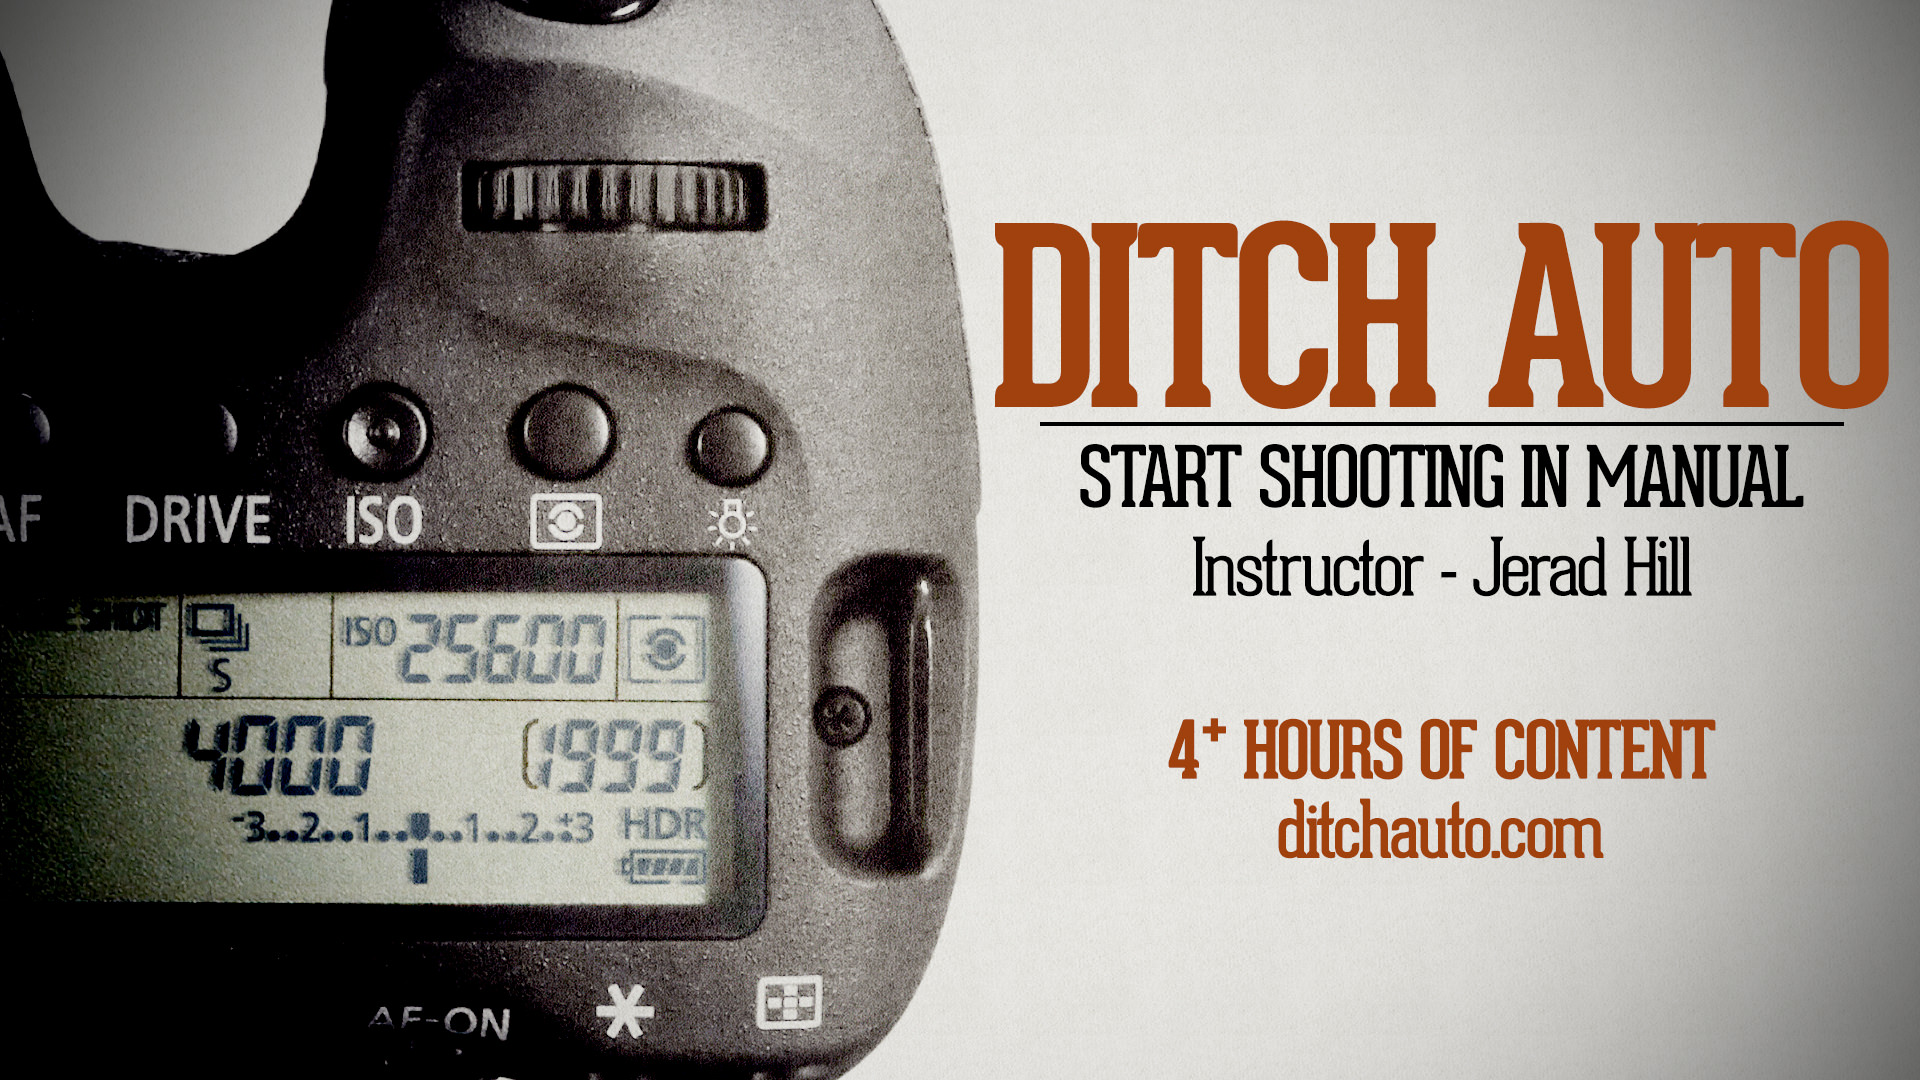 Ditch Auto - Learn To Shoot in Manual